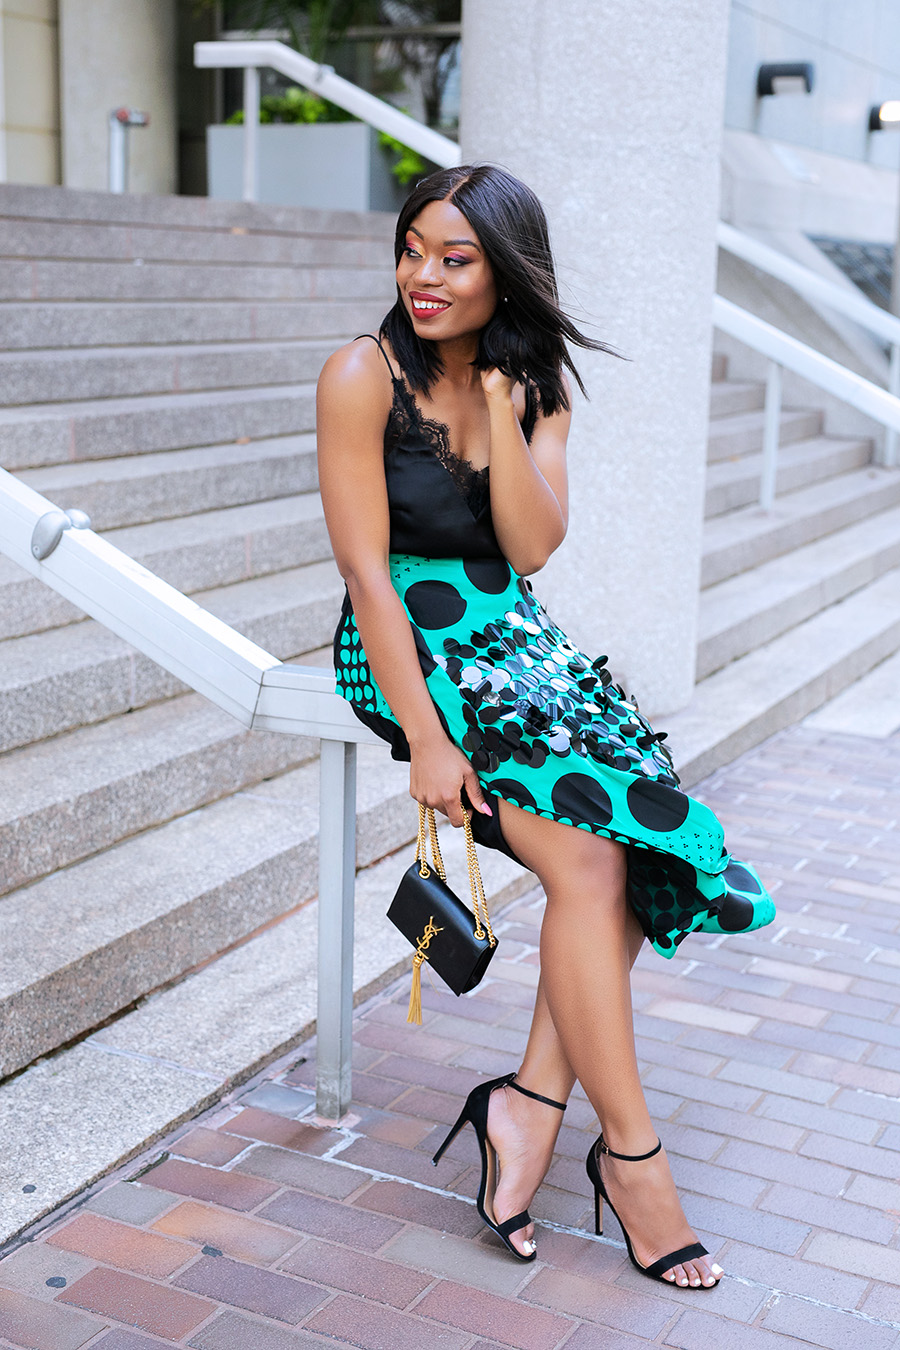 Stella-adewunmi-of-jadore-fashion-Holiday-outfit-in-DVF-embellished-midi-skirt-lace-cami